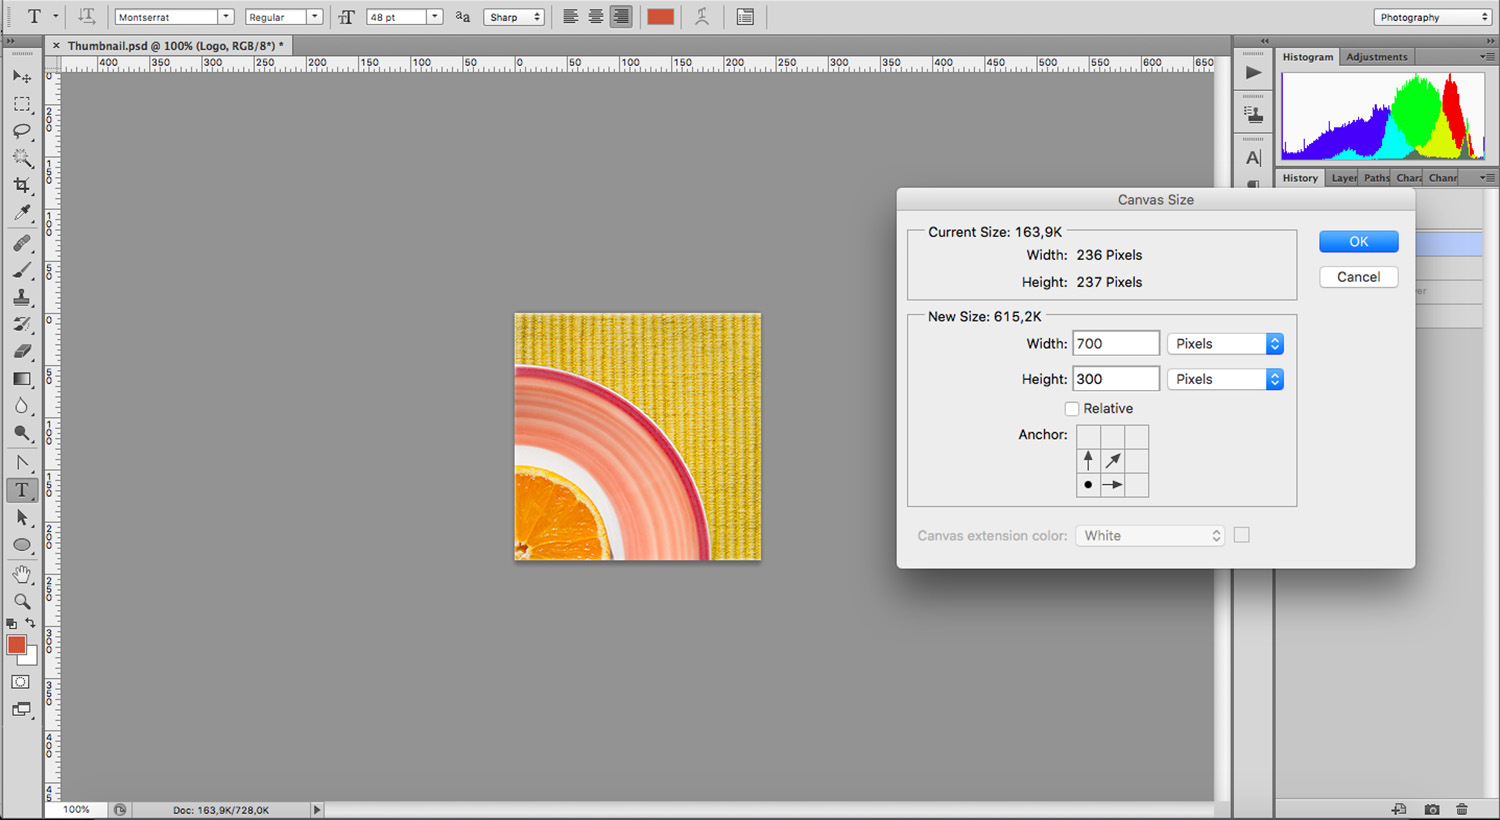 Photoshop tools to extend backgrounds